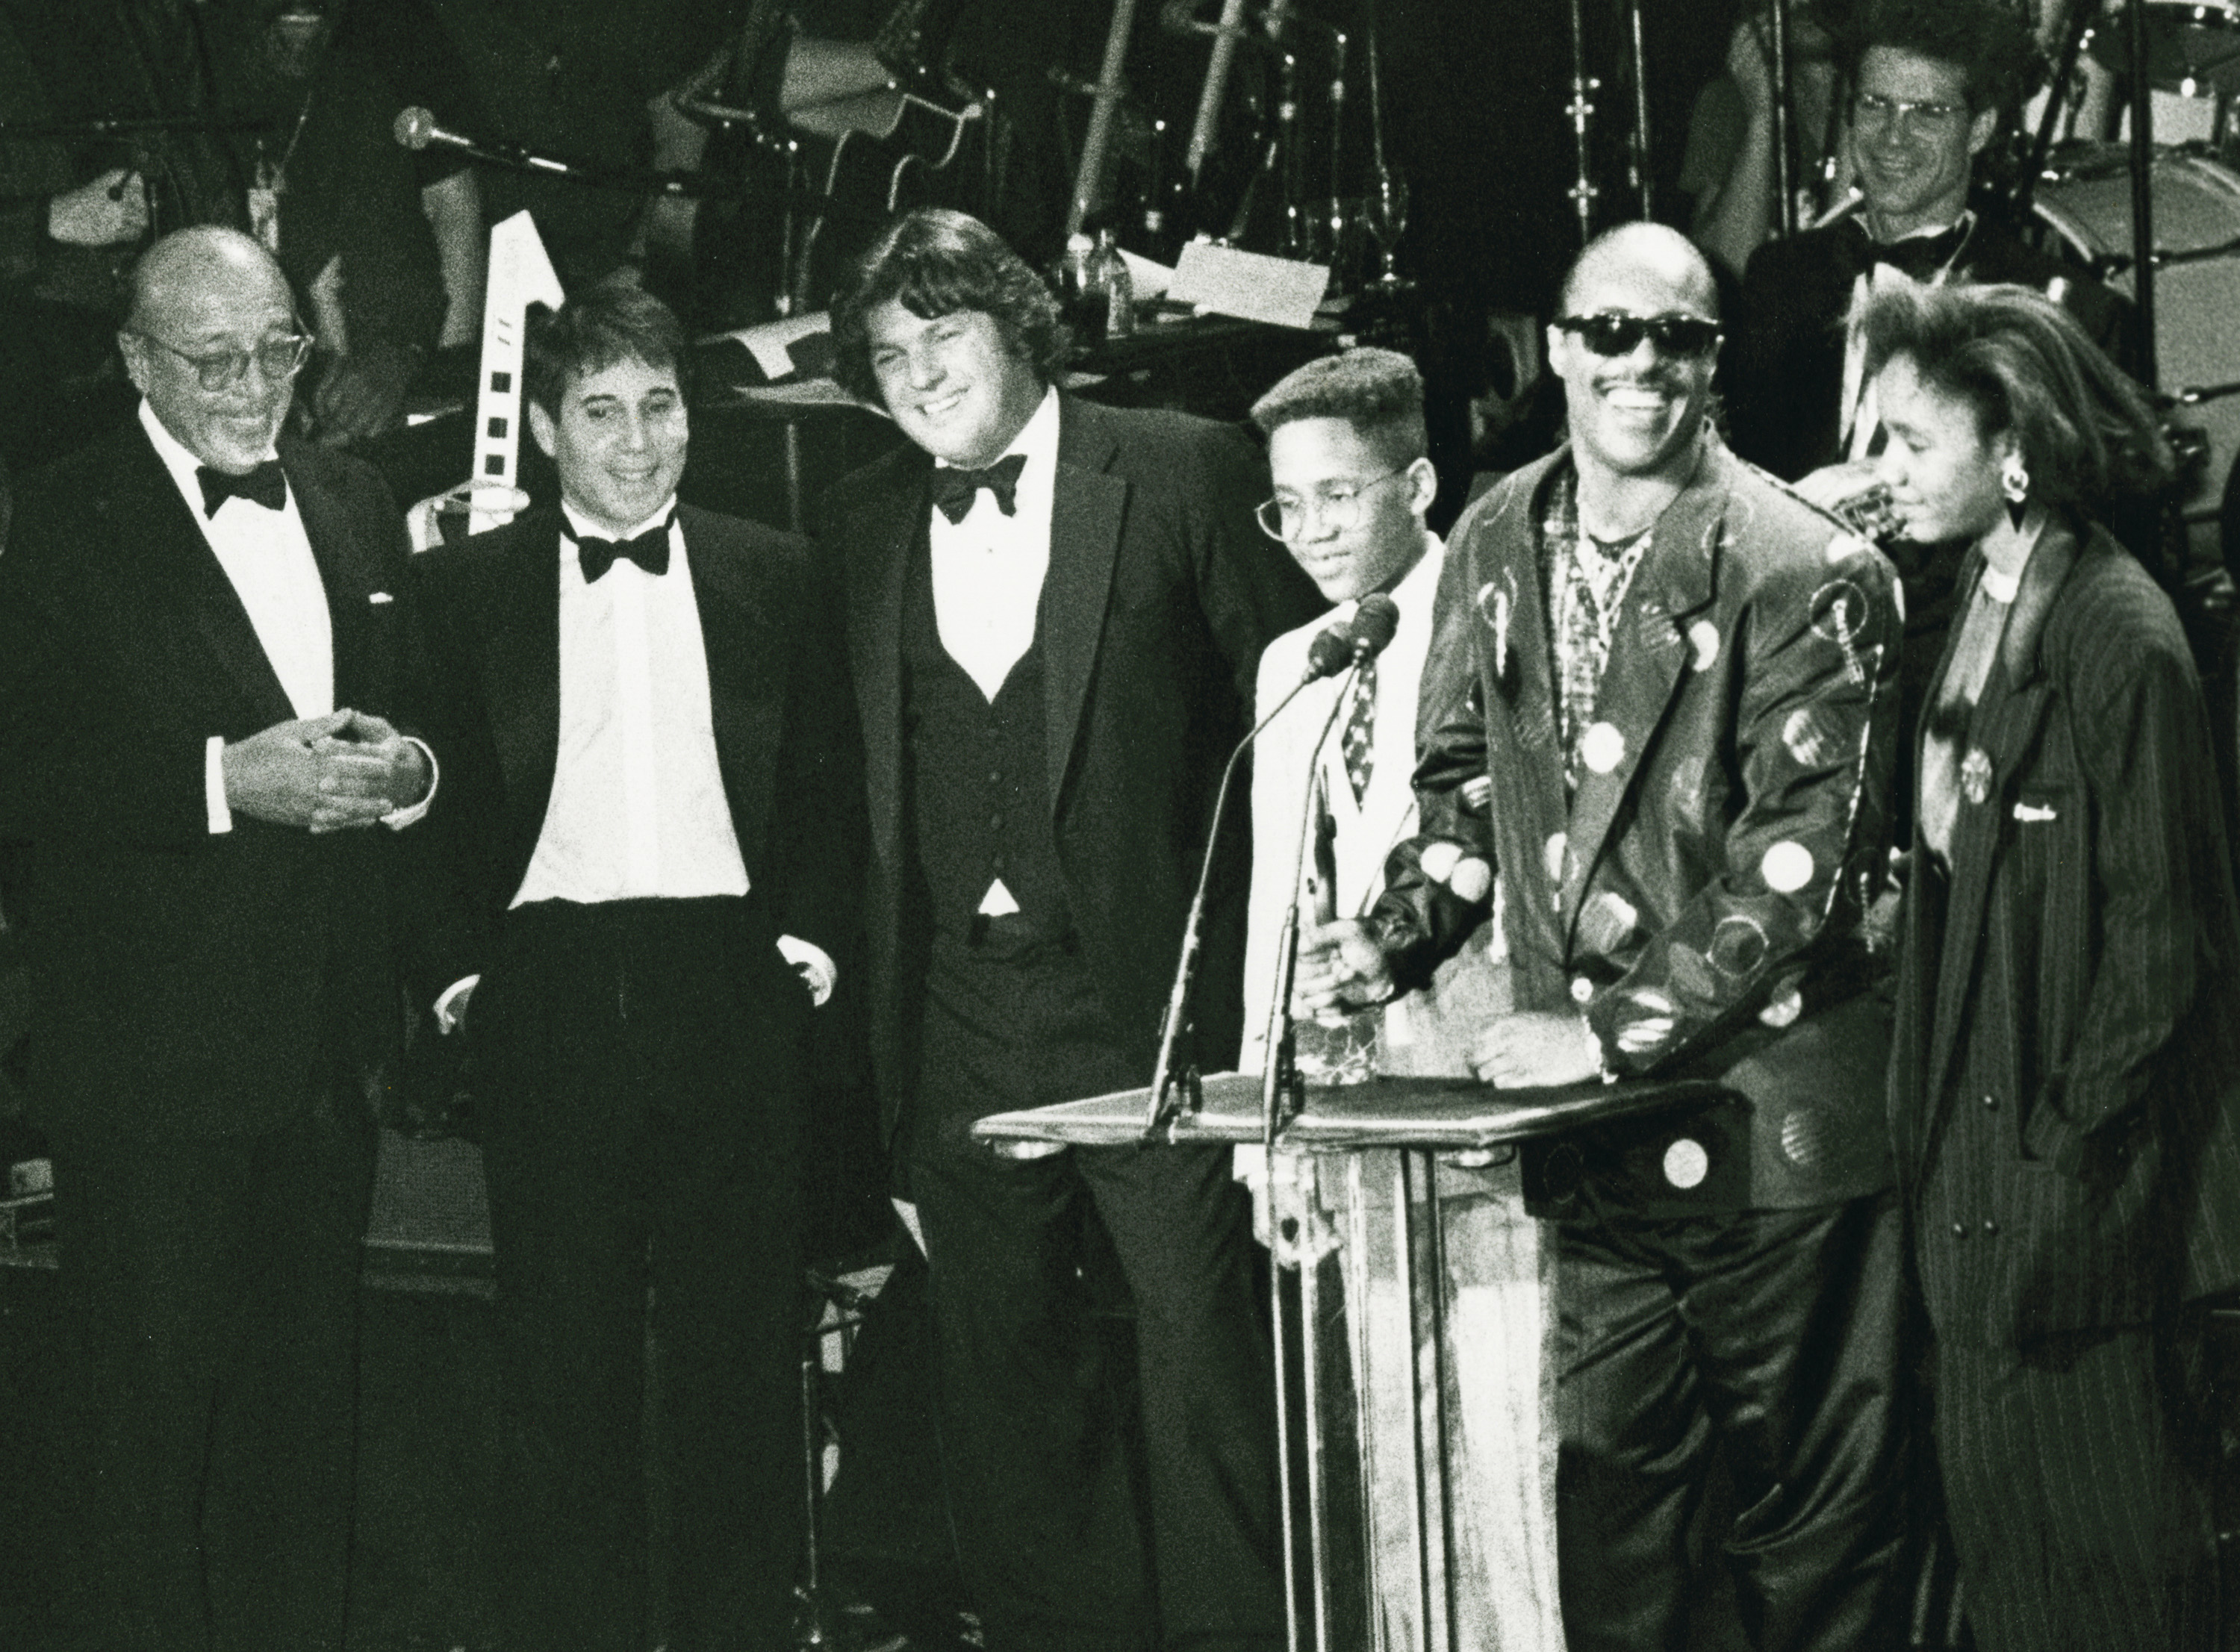 The 1989 Rock and Roll Hall of Fame Induction Ceremony ...